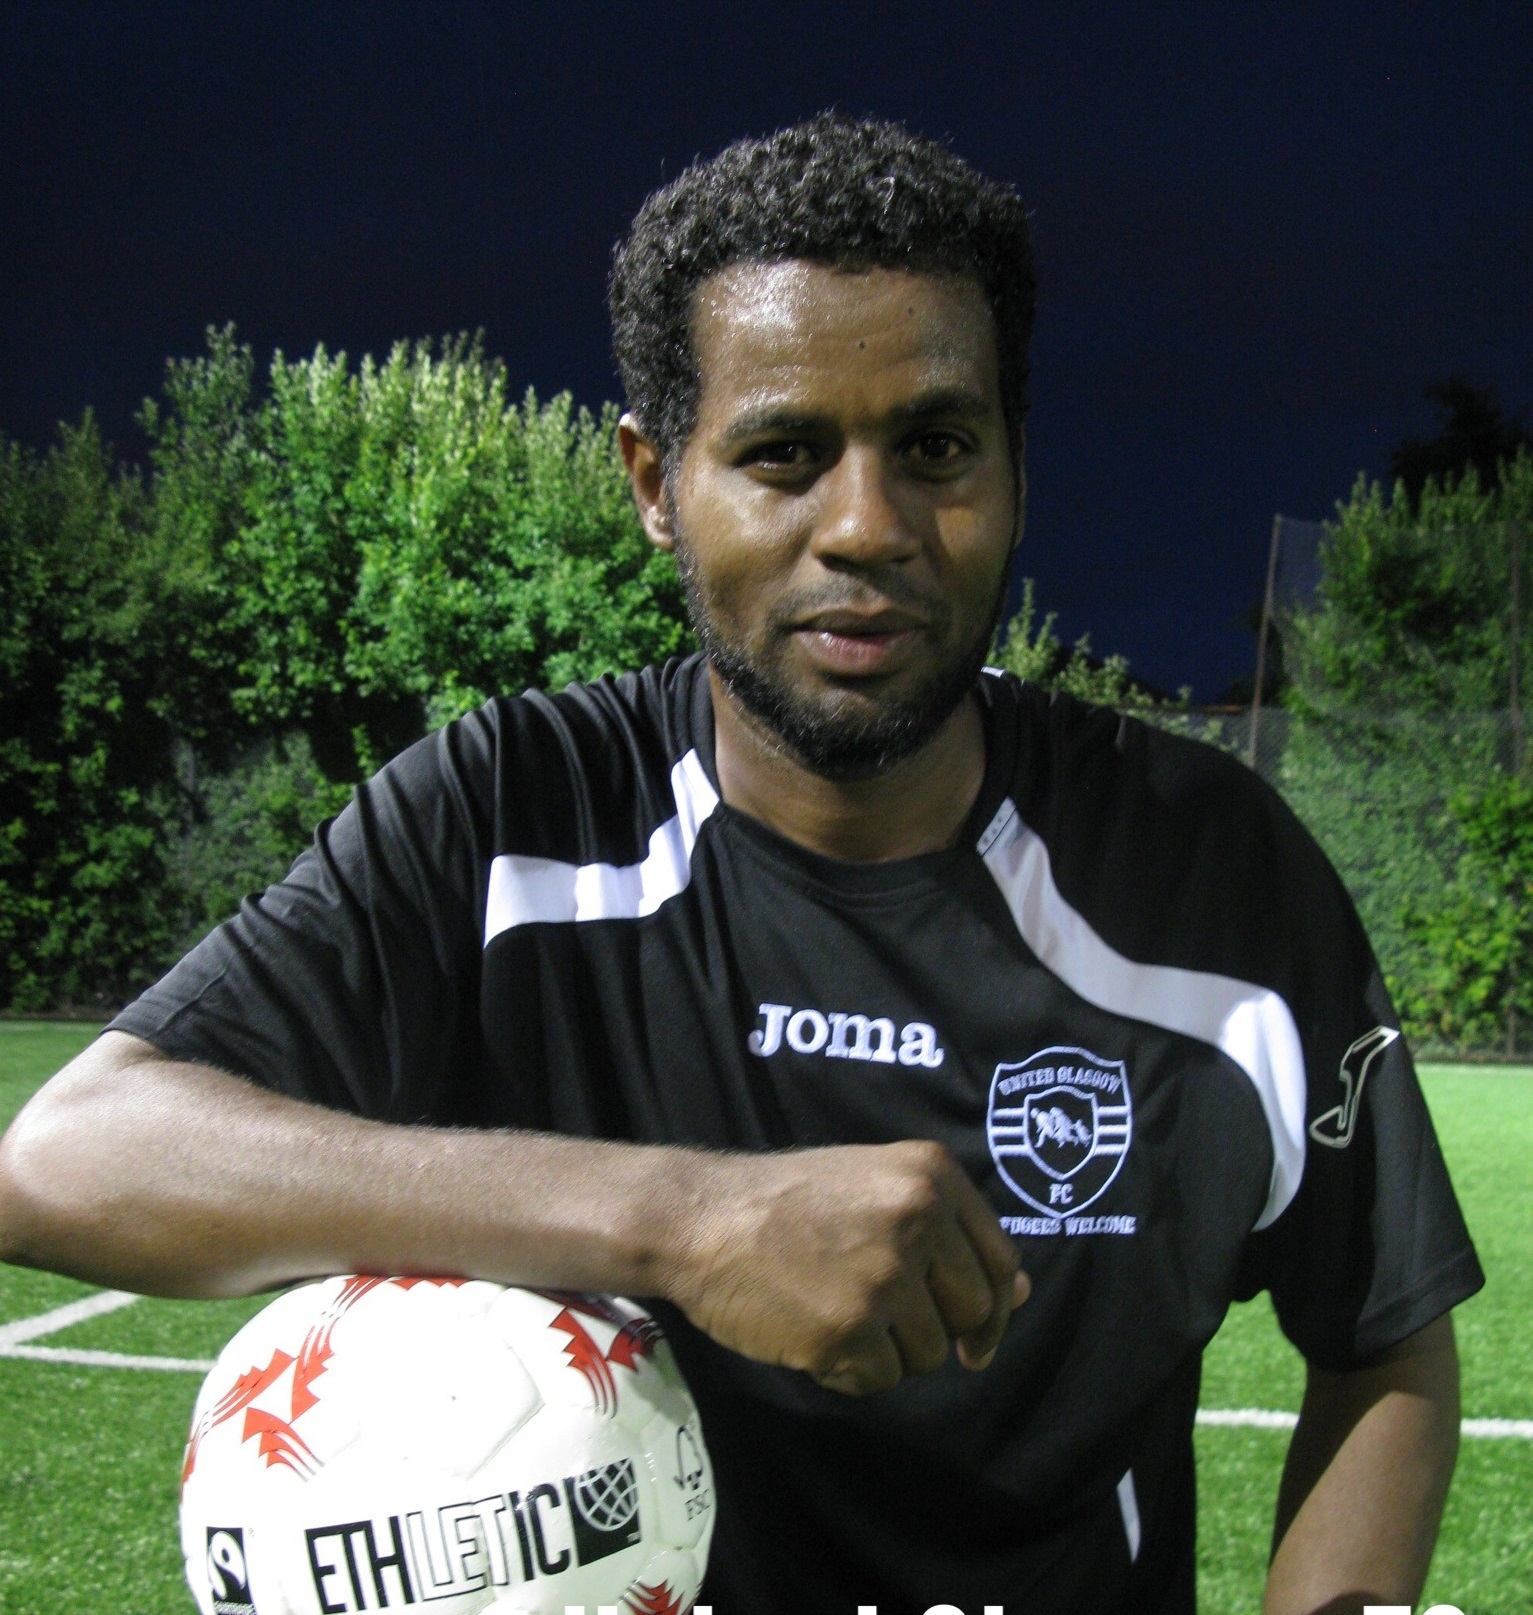 Chayna was voted Player of the Match by his teammates